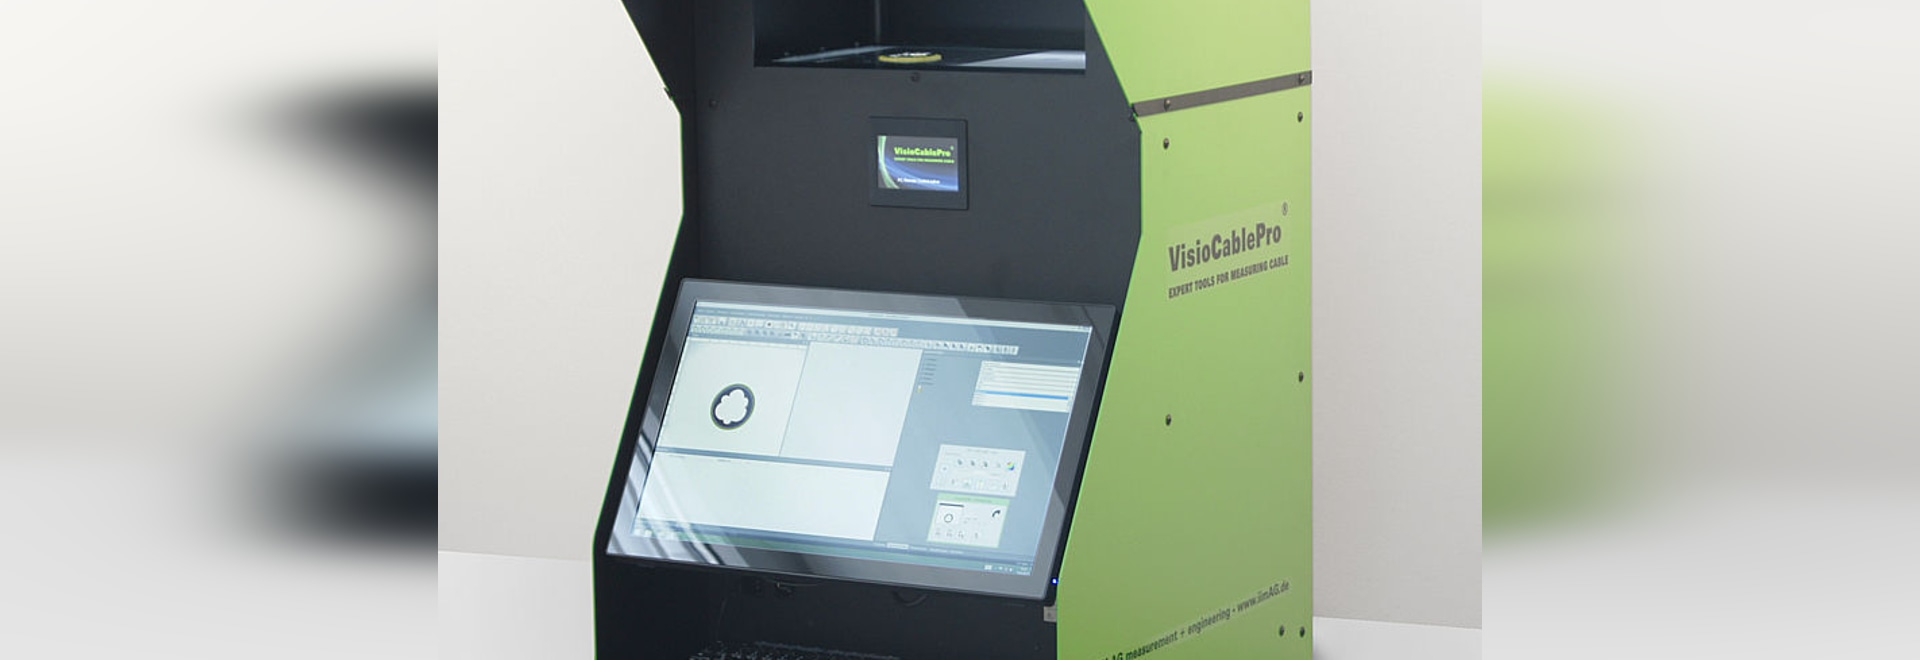 The new cable measuring device VCPX5